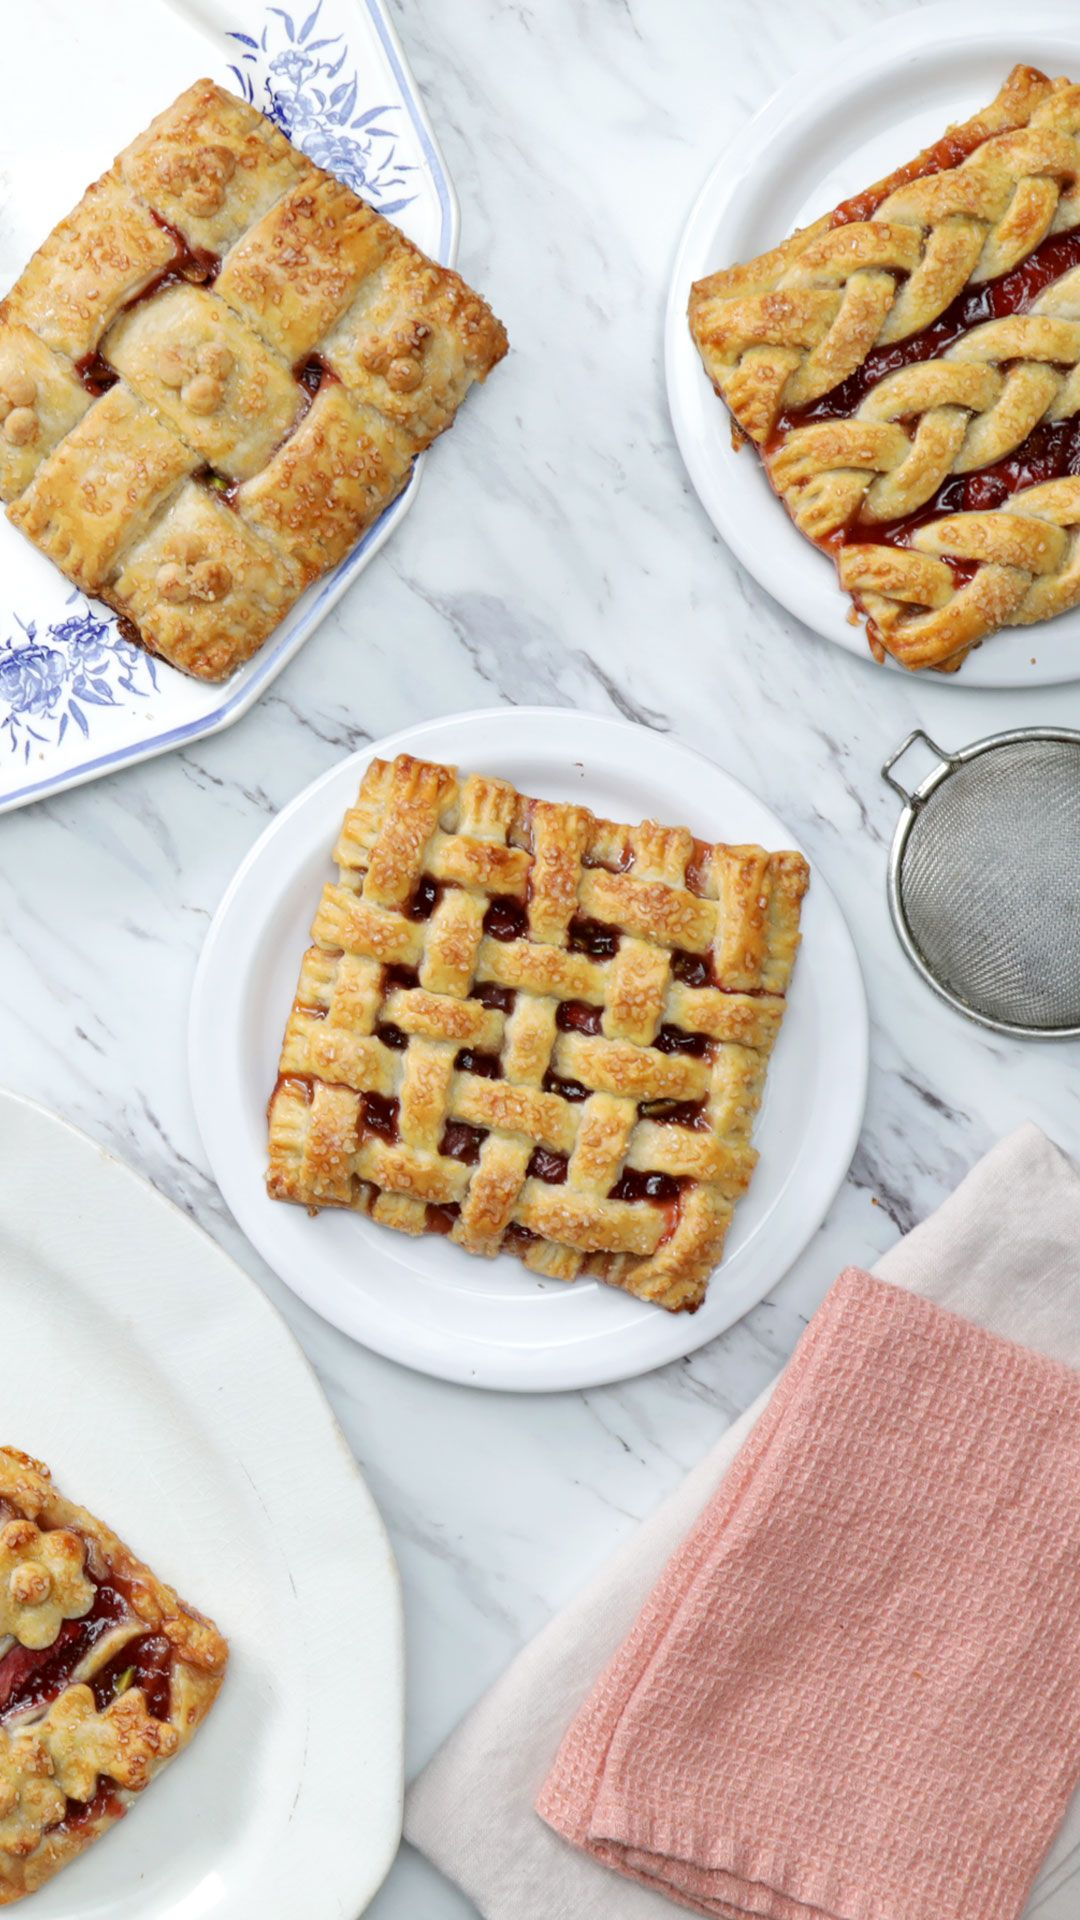 Springtime Strawberry Hand Pies 4 Ways